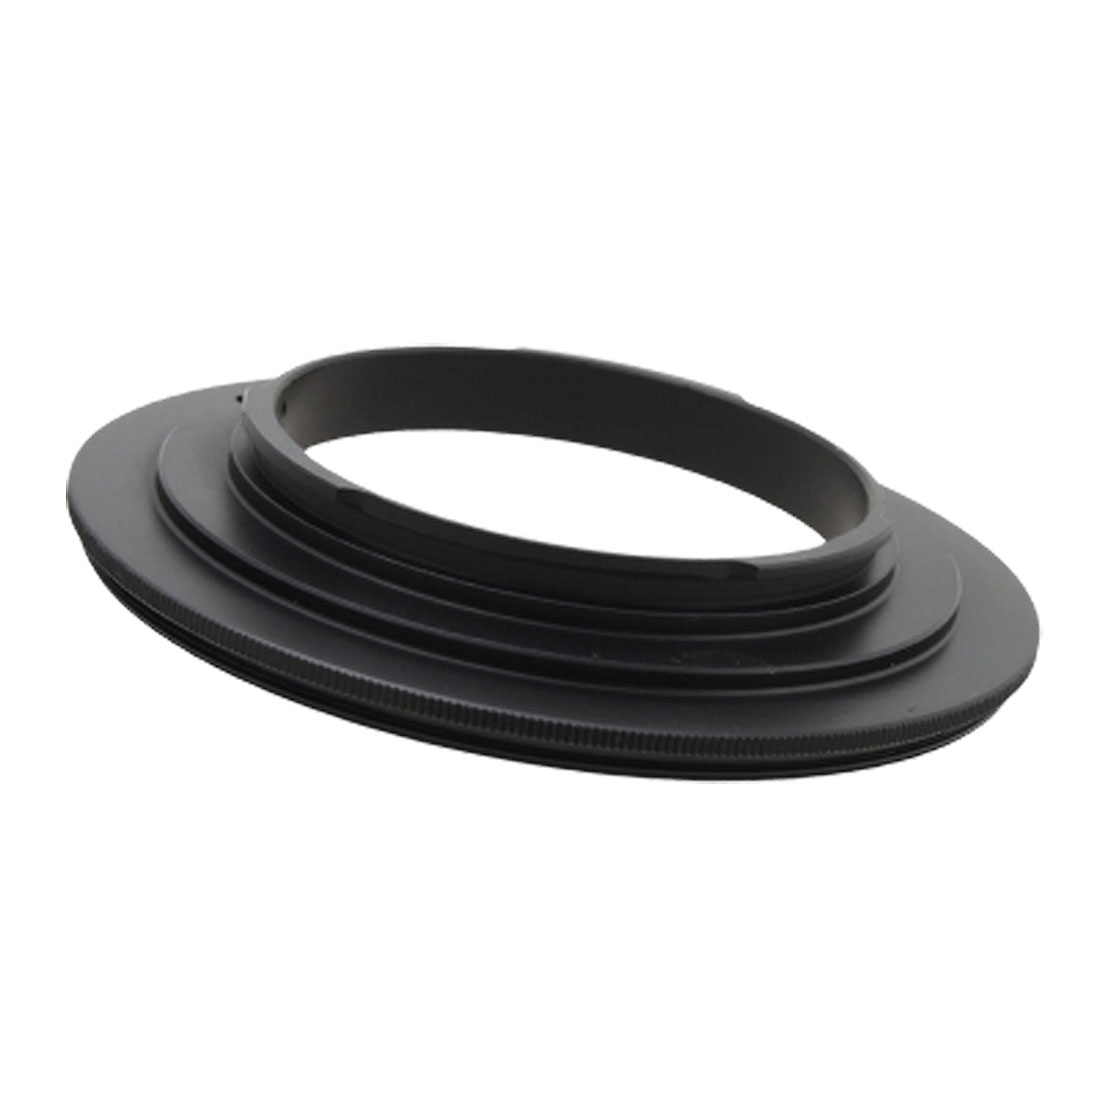 77mm Lens Reversal Filter Adapter for SLR Digital Camera